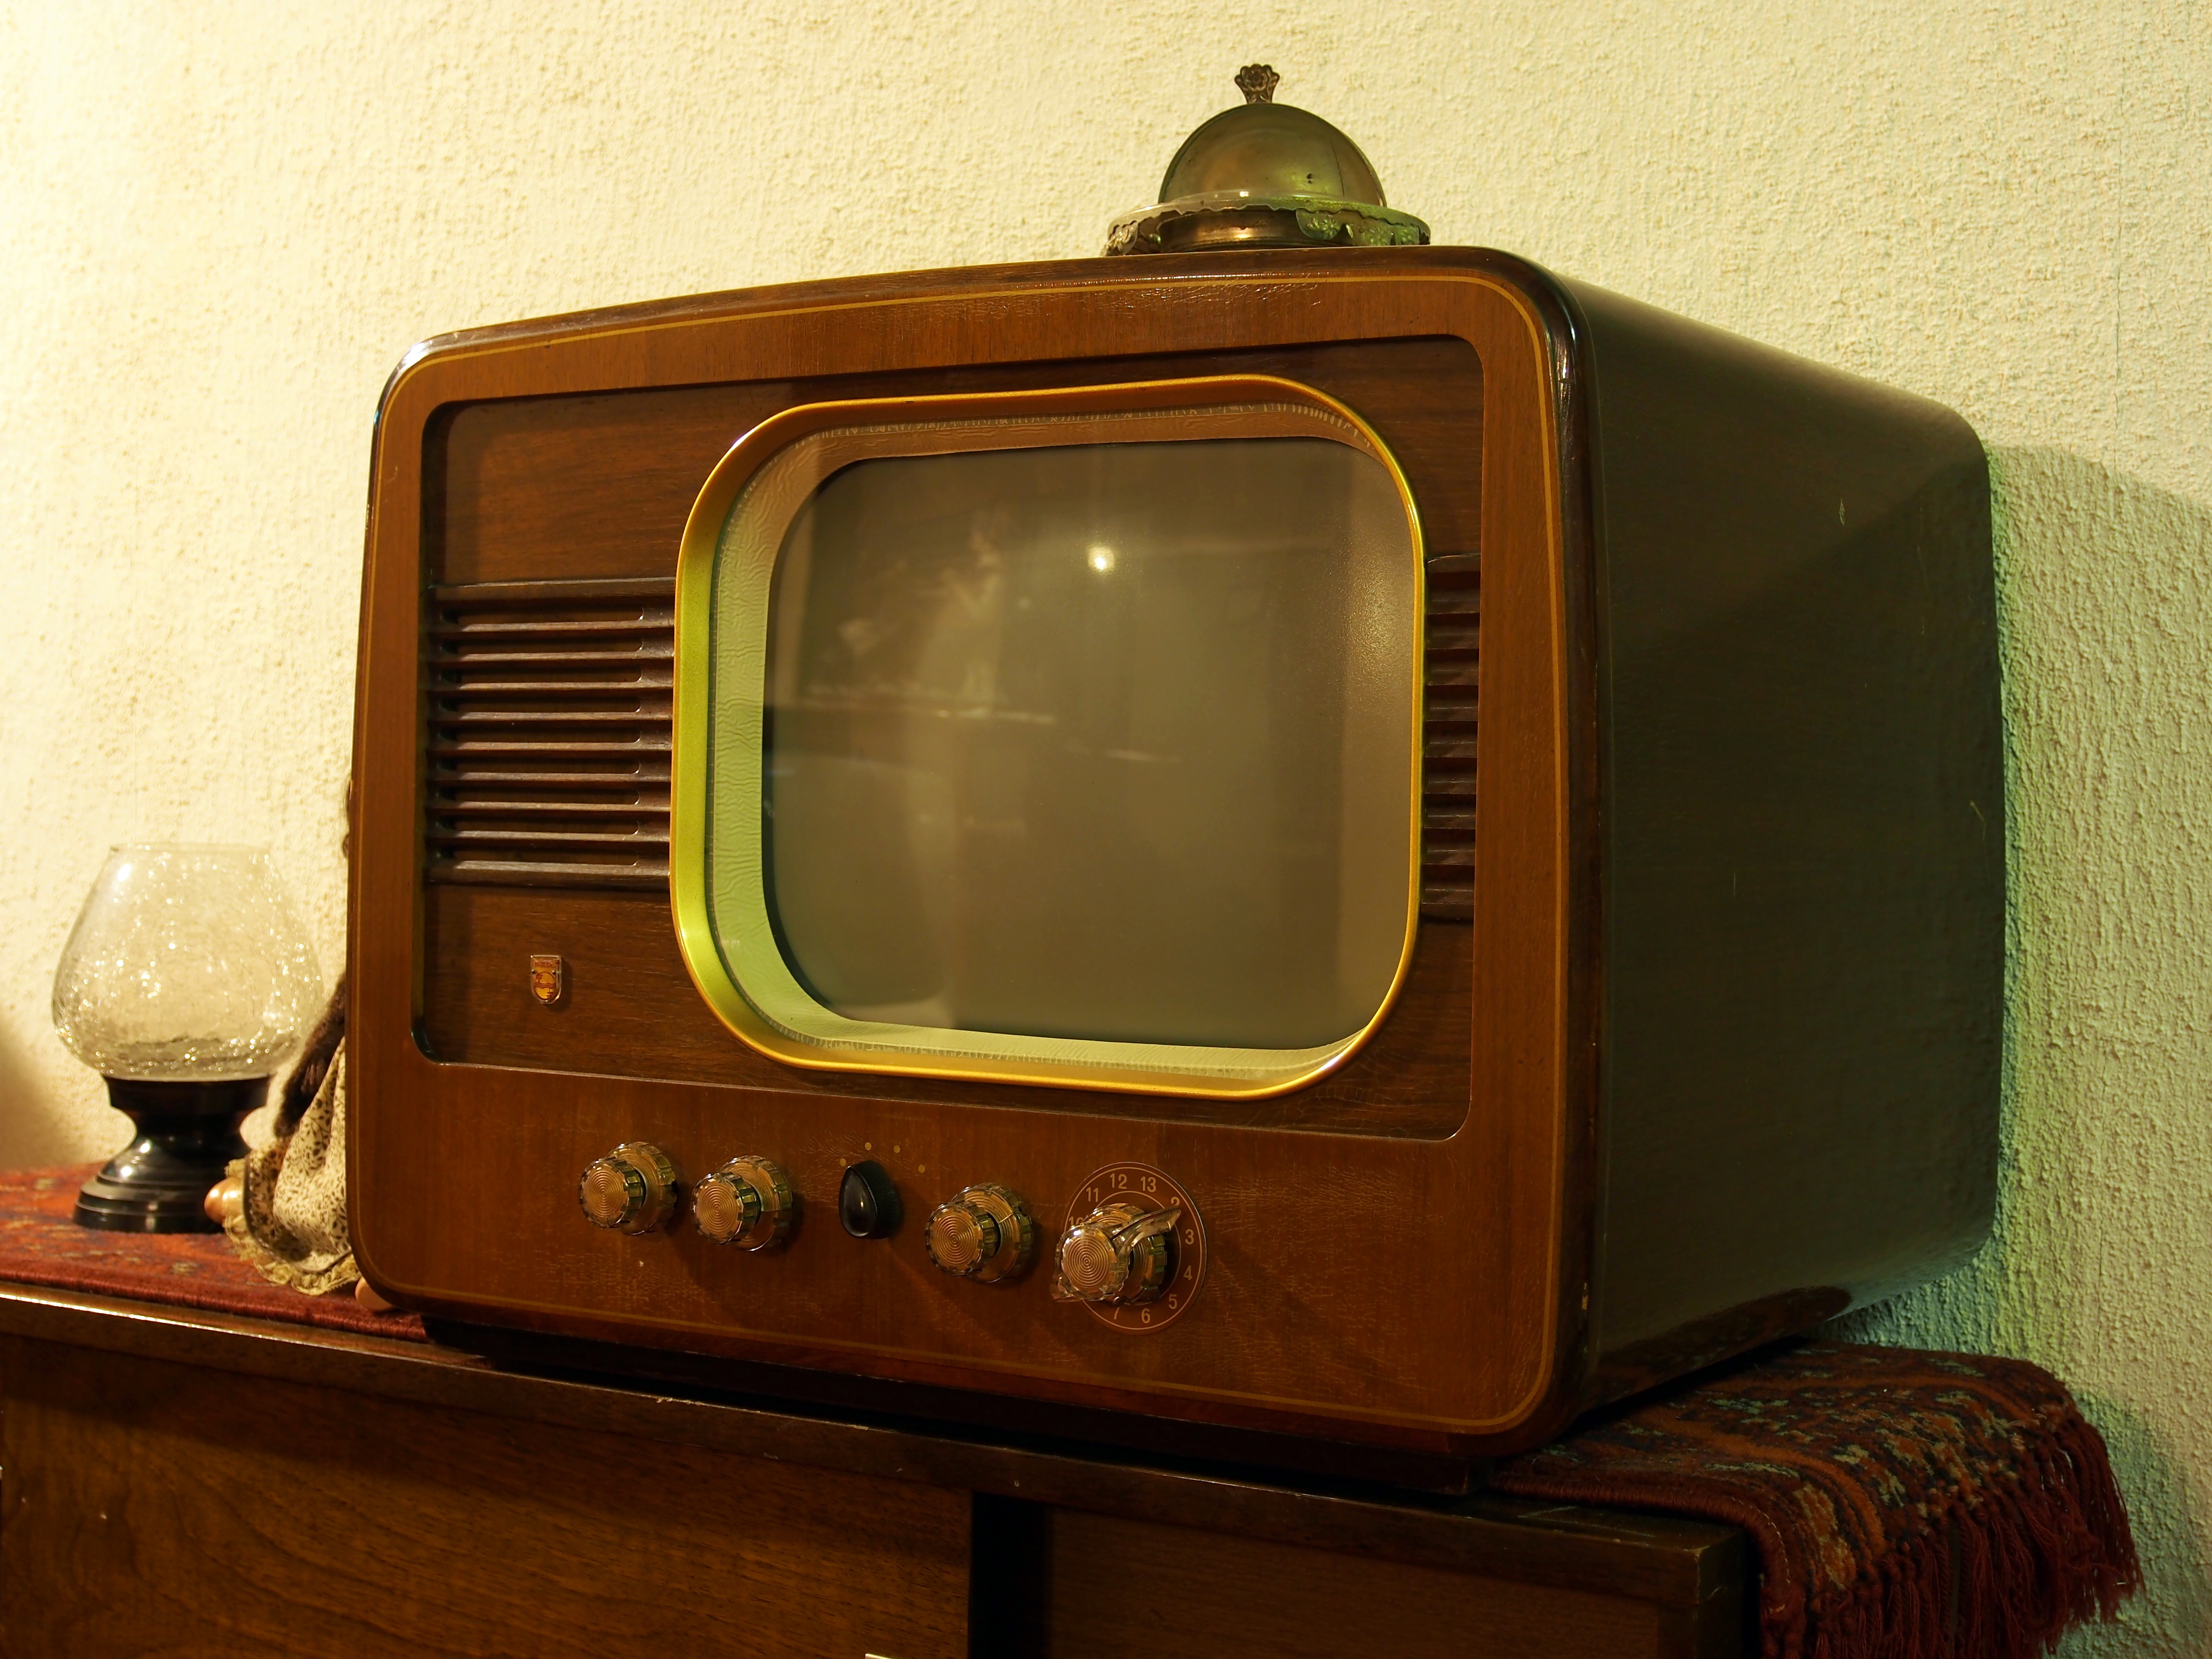 Fileold Philips Television Set, Pic6jpg  Wikimedia Commons